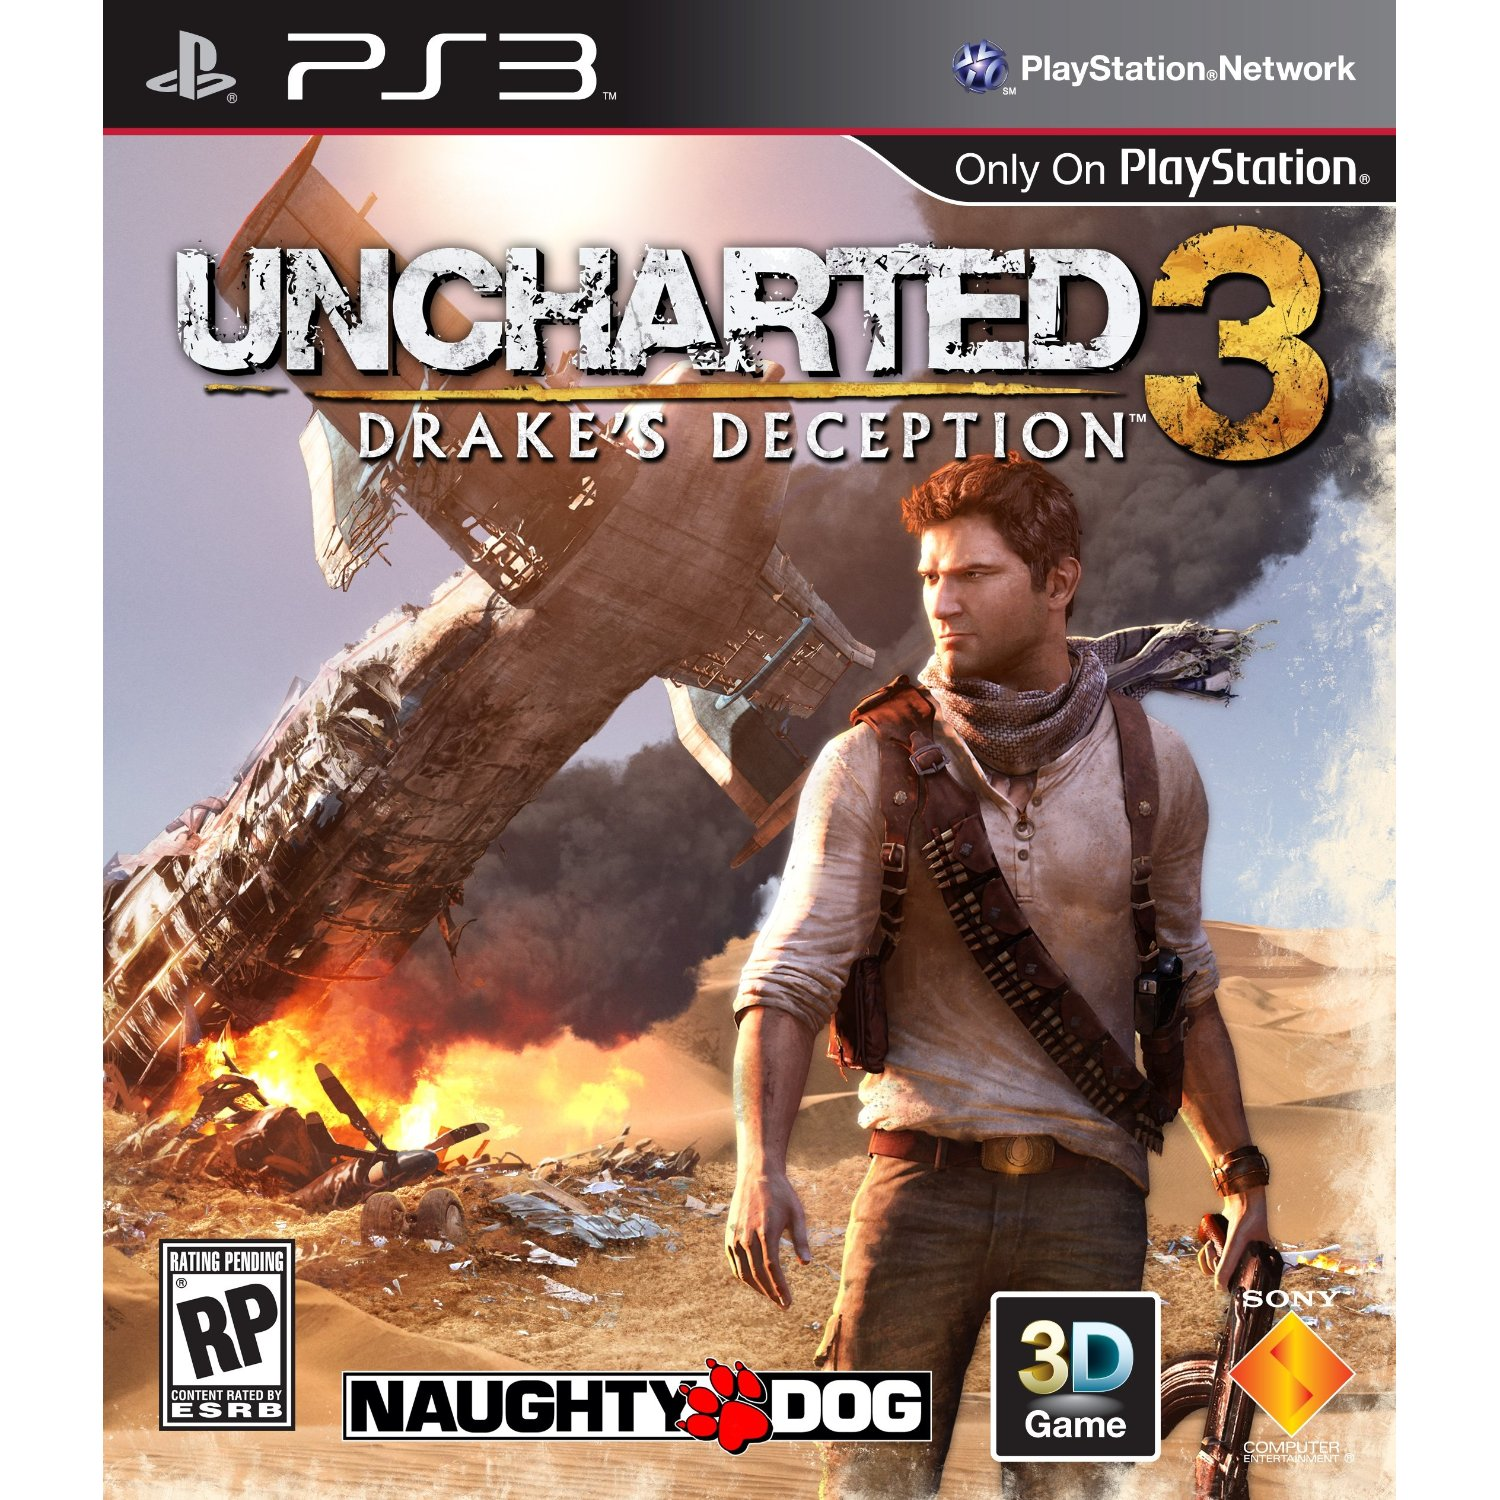 uncharted3-box.jpg